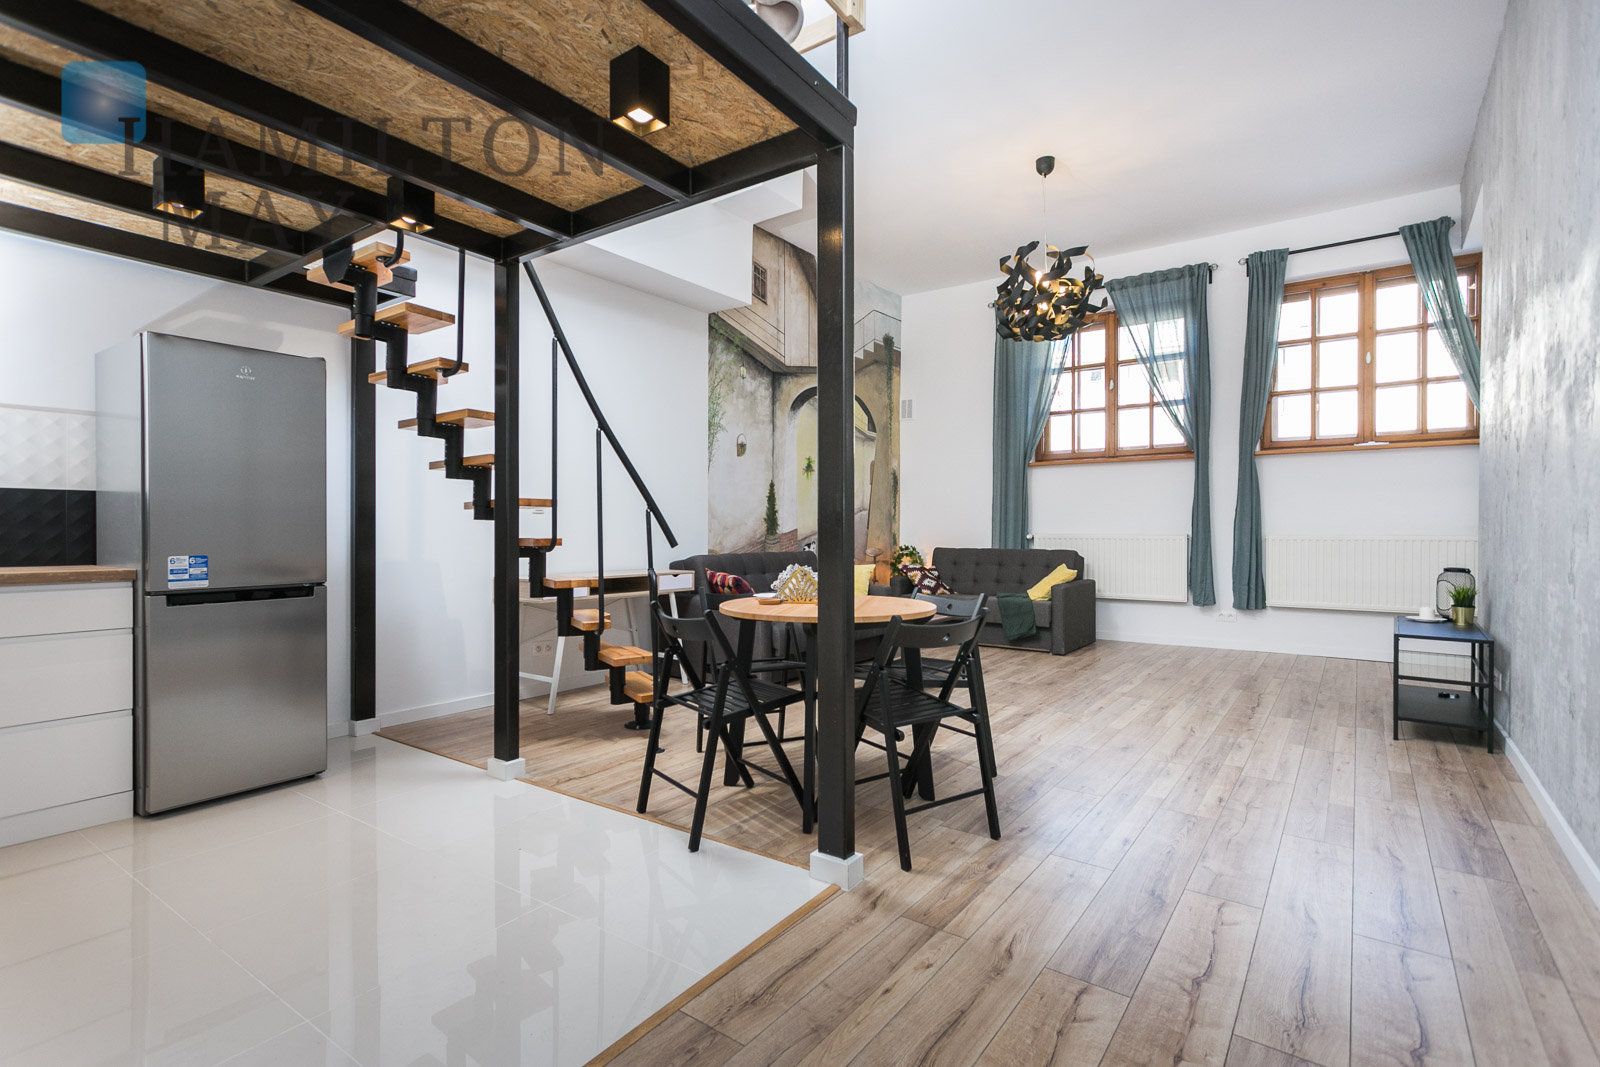 A spacious studio apartment with a mezzanine in a superb location in Salwator Krakow for sale